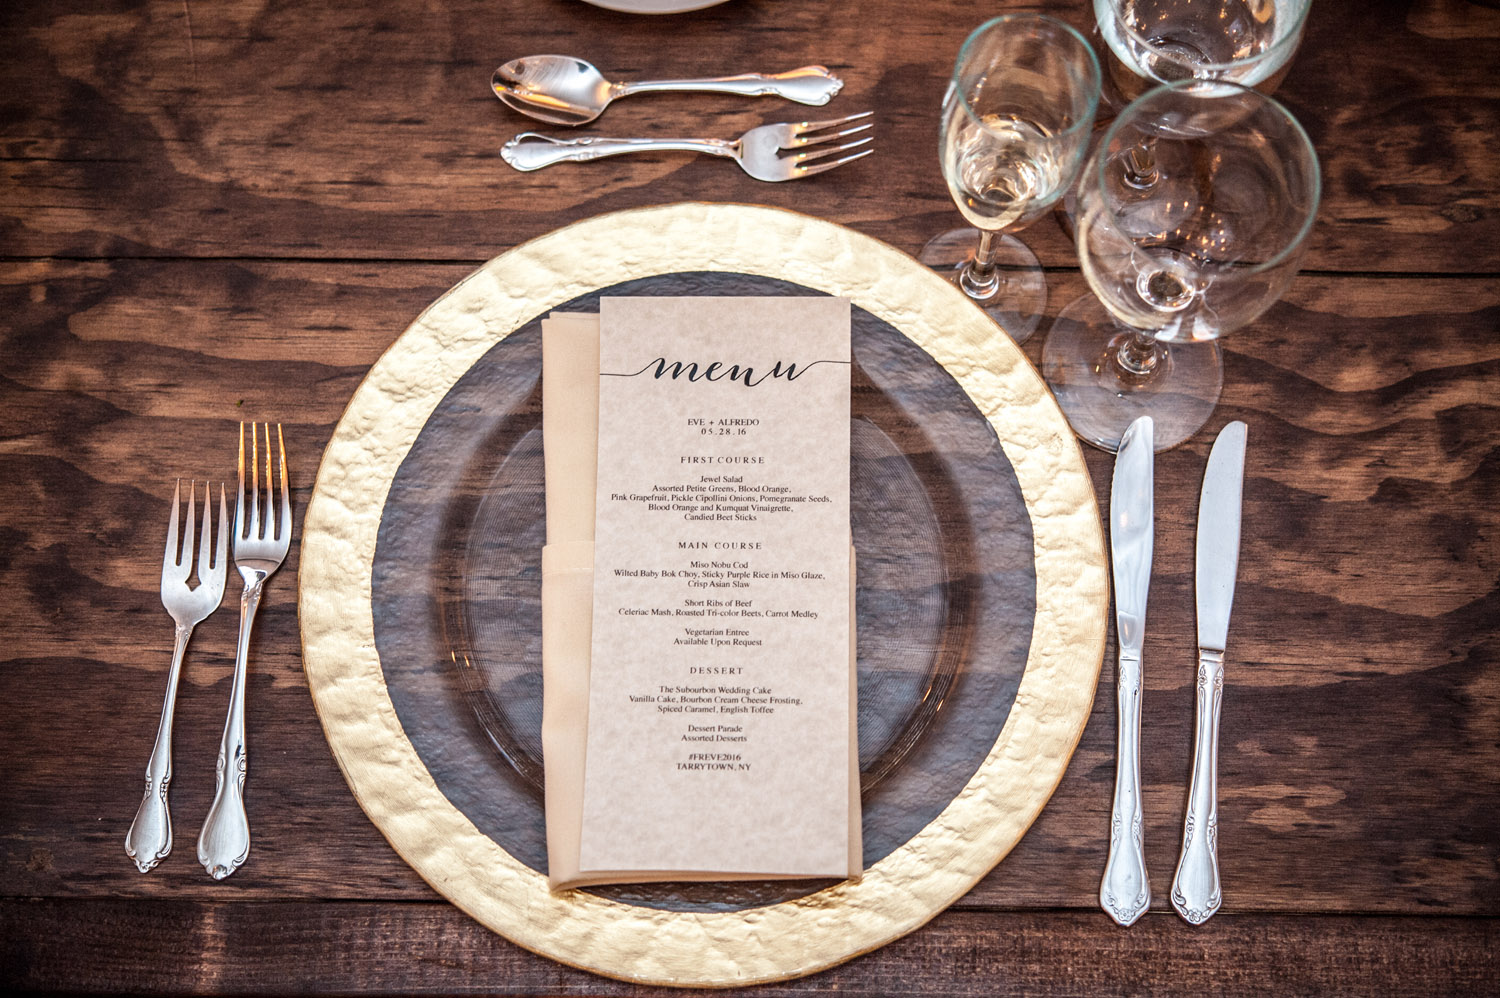 hammered texture gold-rimmed charger at wedding with wooden table